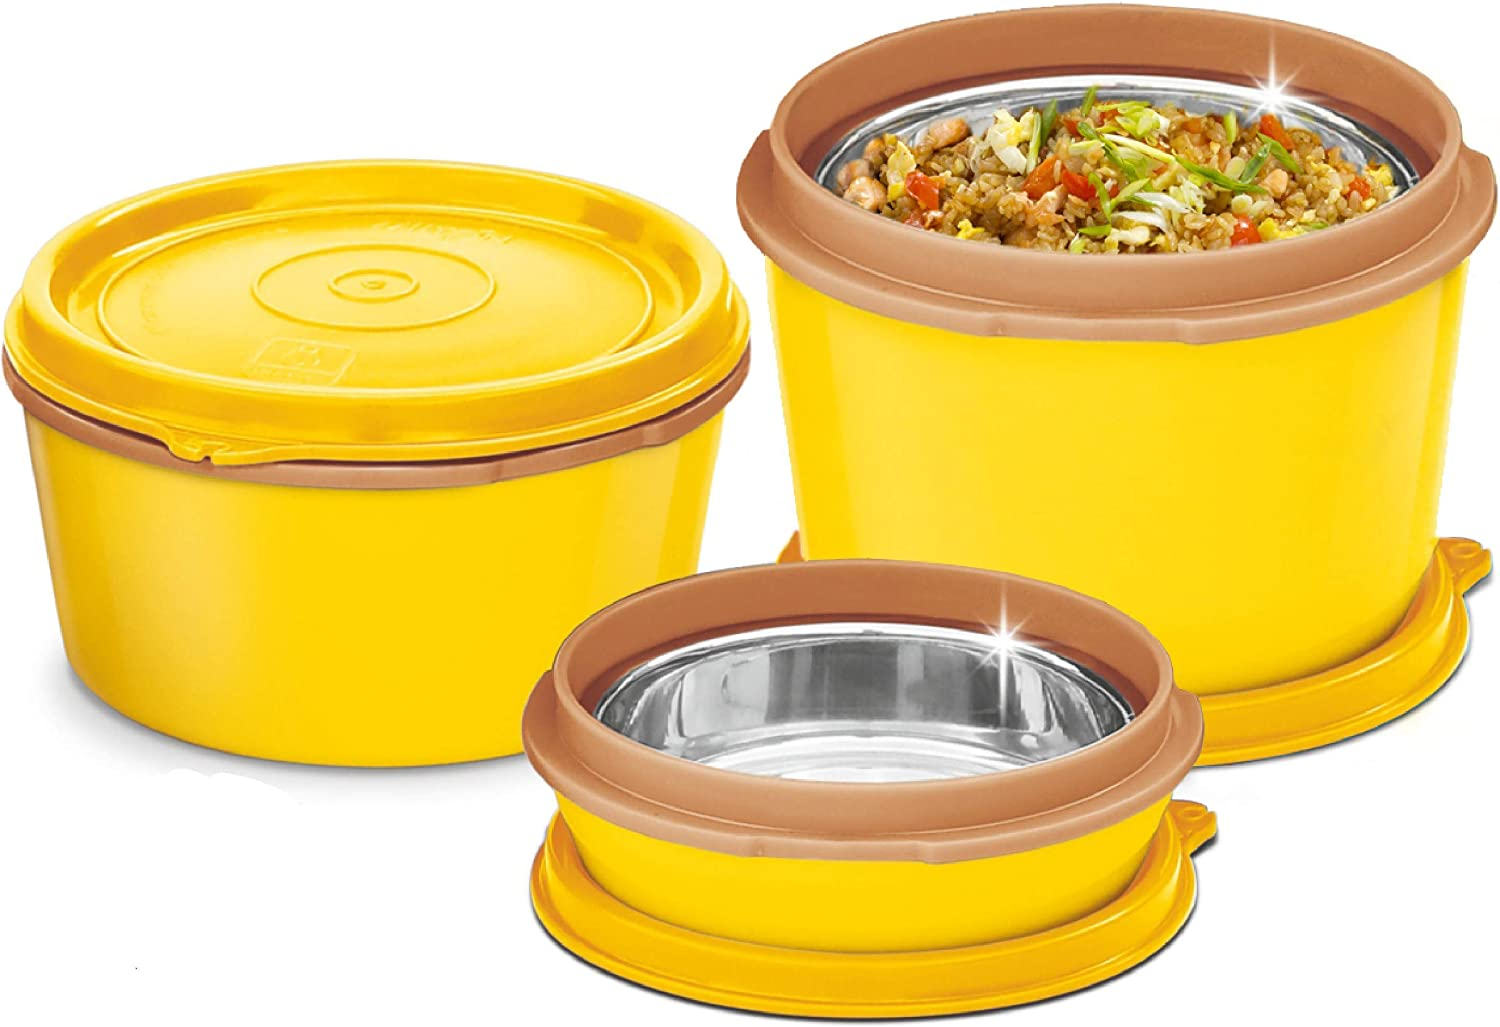 MILTON Bento Lunch Box Set - 3 MICROWAVEABLE Stainless Steel Meal Prep Containers, Food Storage Boxes w/Leak Proof Lids For Men,Women,Kids - Yellow